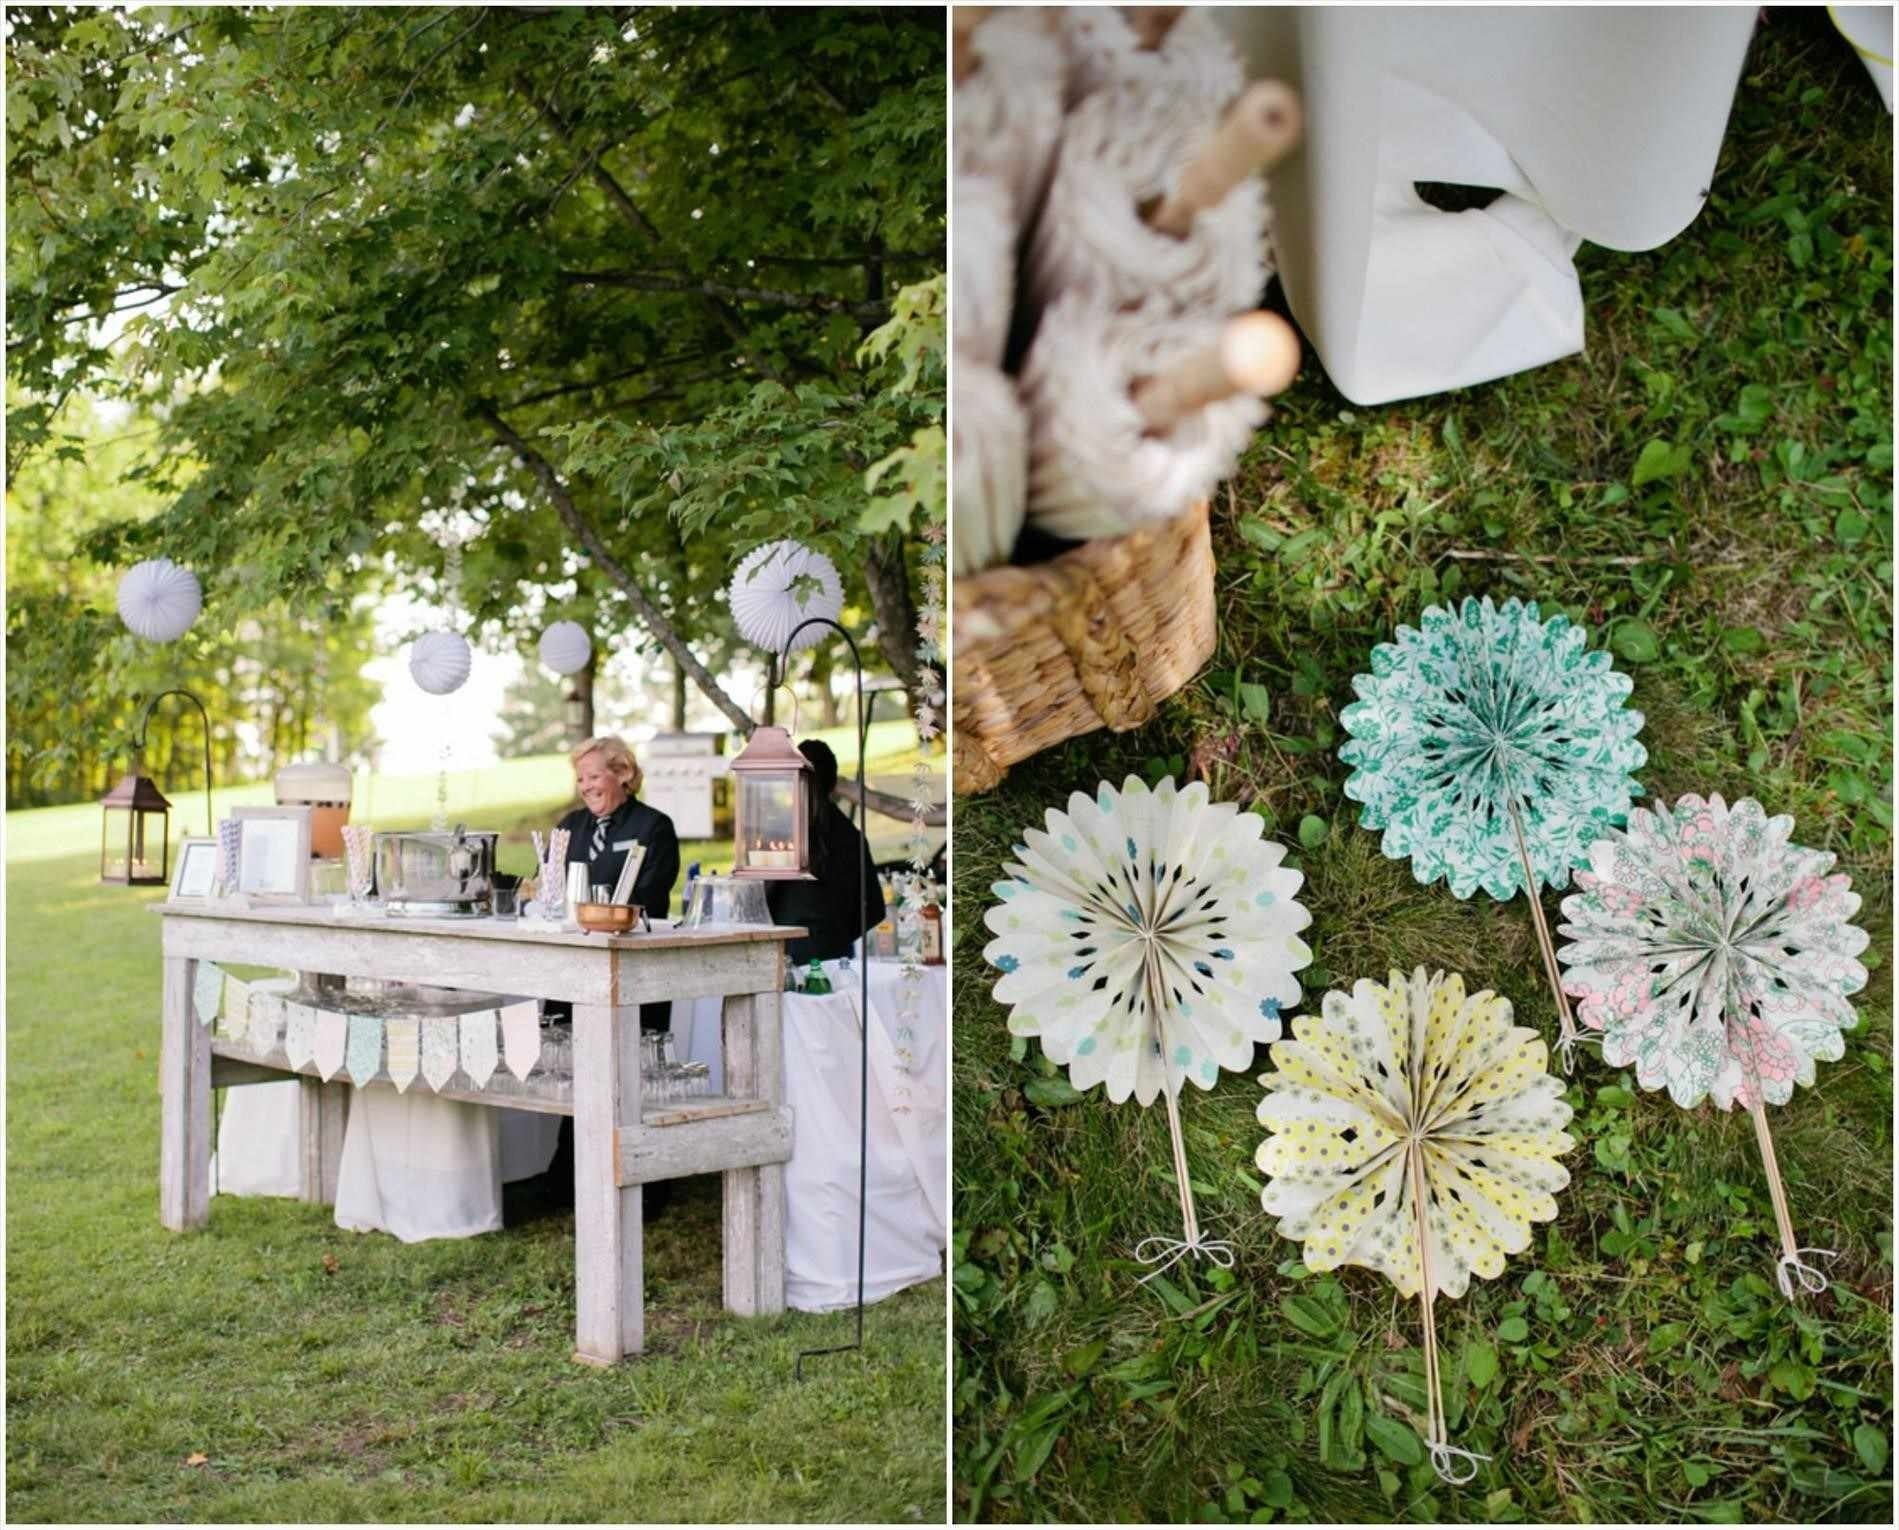 10 Cute Country Wedding Ideas For Spring